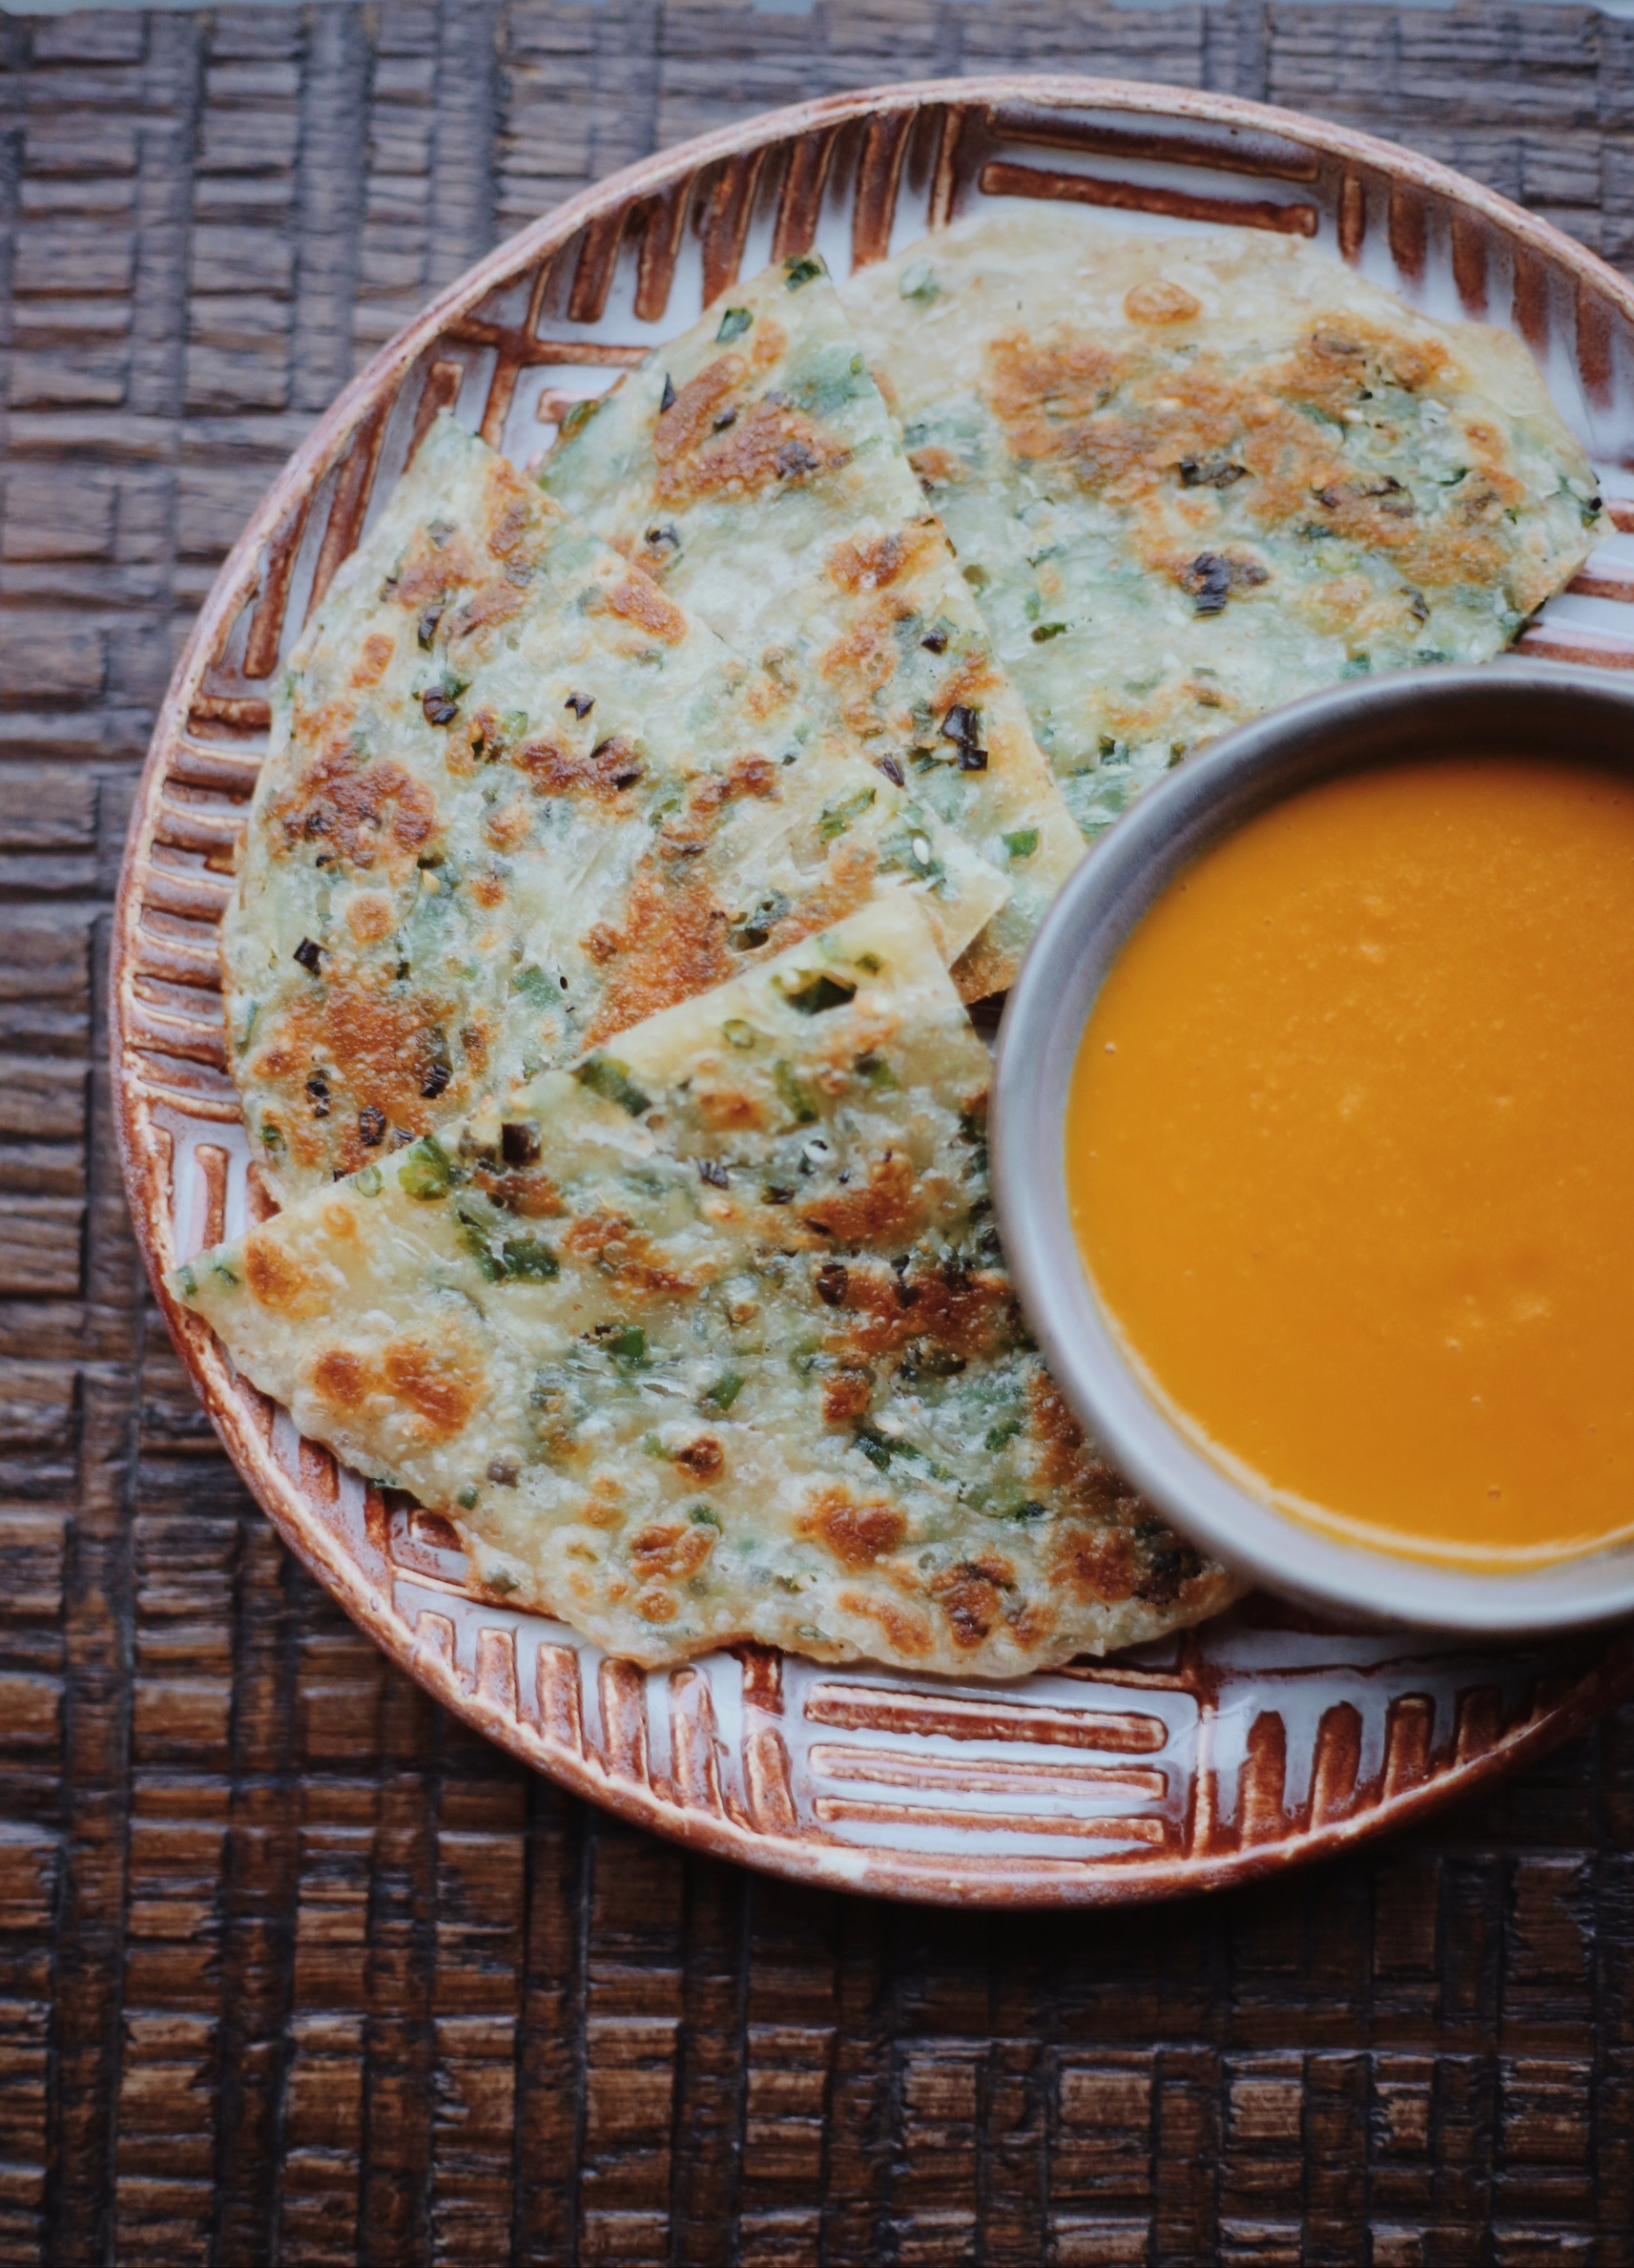 Japanese-style pancake with green onions